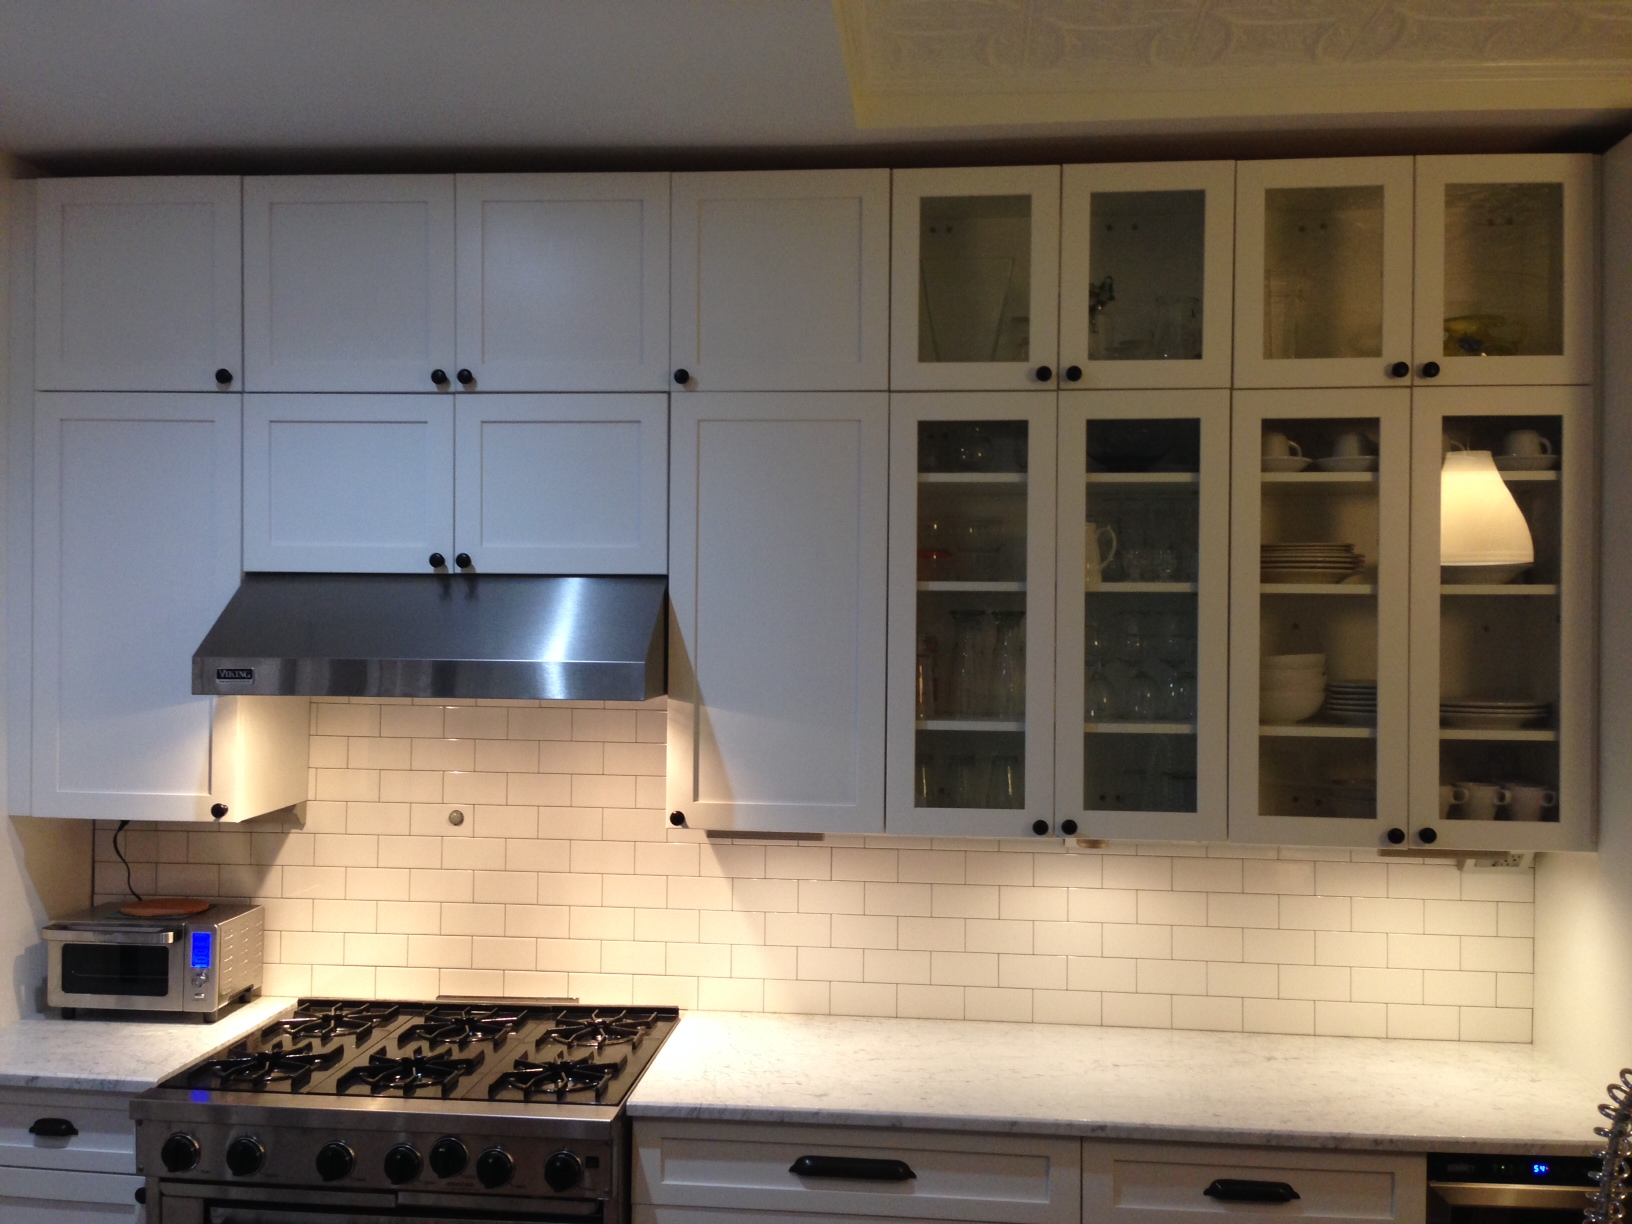 Marvelous Some Finishing Touches On The Kitchen: Backsplash, Under Cabinet Lighting,  Pot Filler. | Brownstone Cyclone